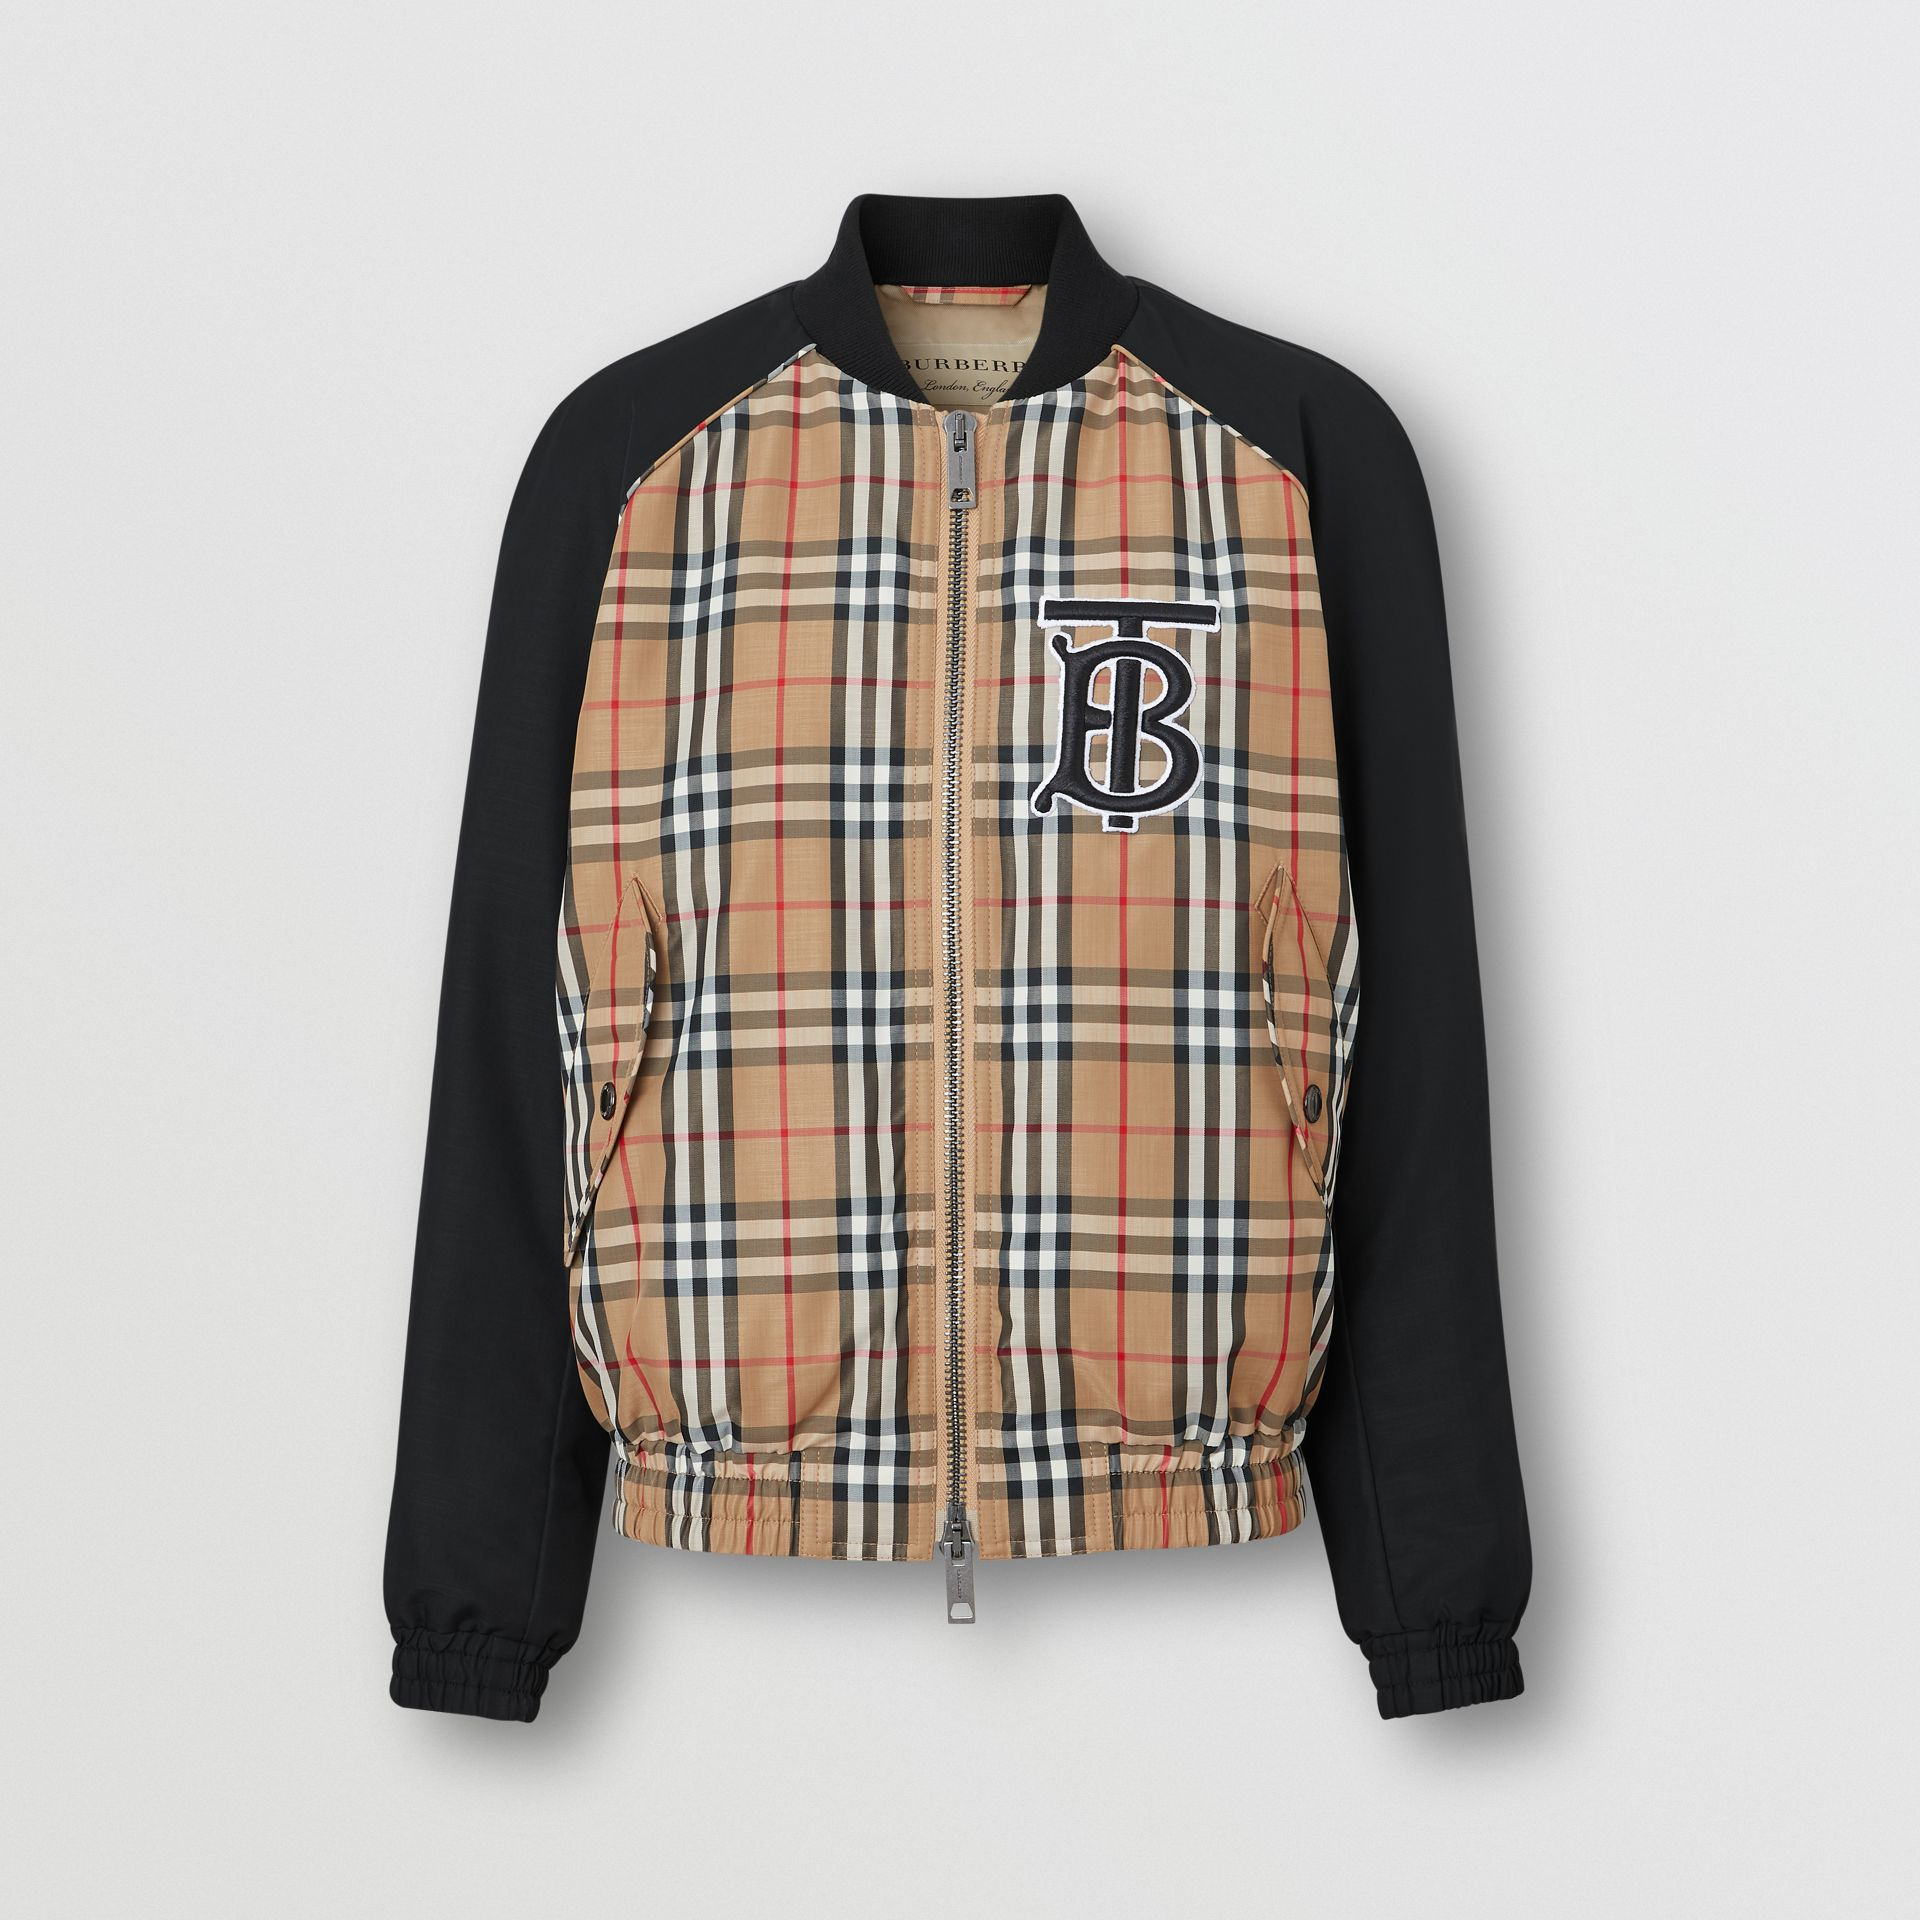 Monogram Motif Vintage Check Bomber Jacket in Black - Women | Burberry - gallery image 3